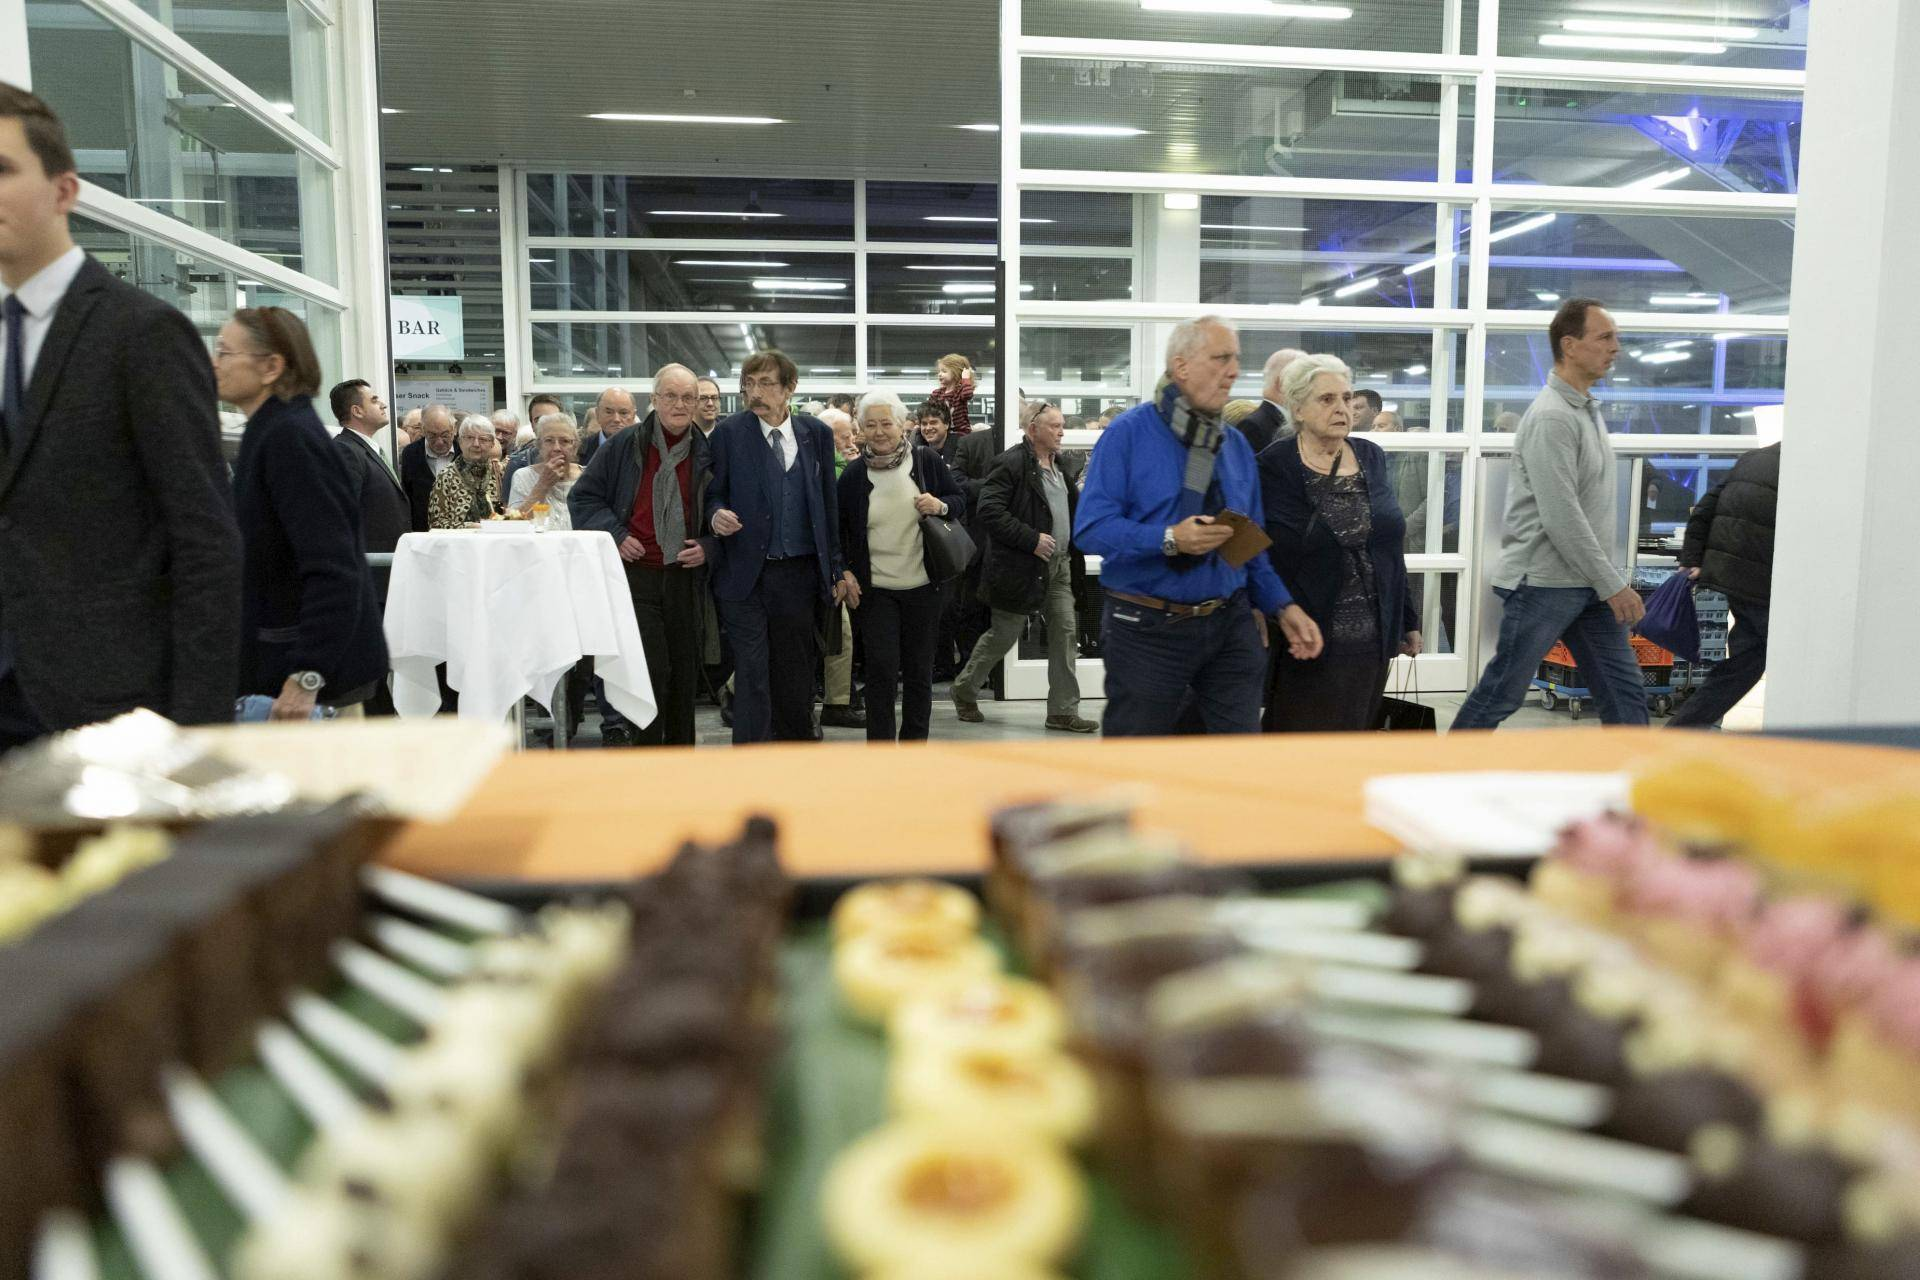 Annual General Meeting 2010 of Barry Callebaut AG